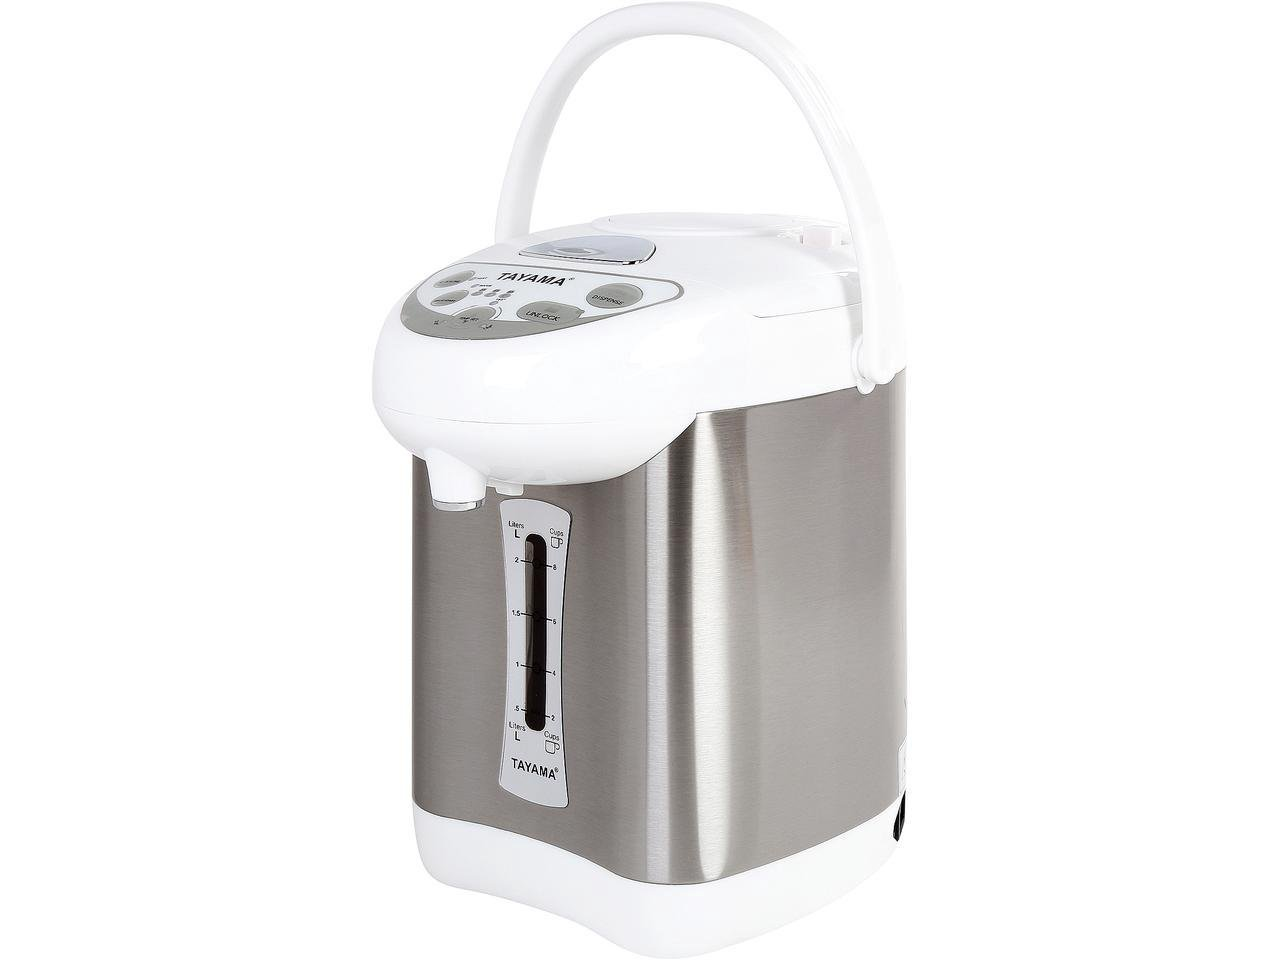 Tayama AX-300 Electric Thermo Pot, 2.8 L, White